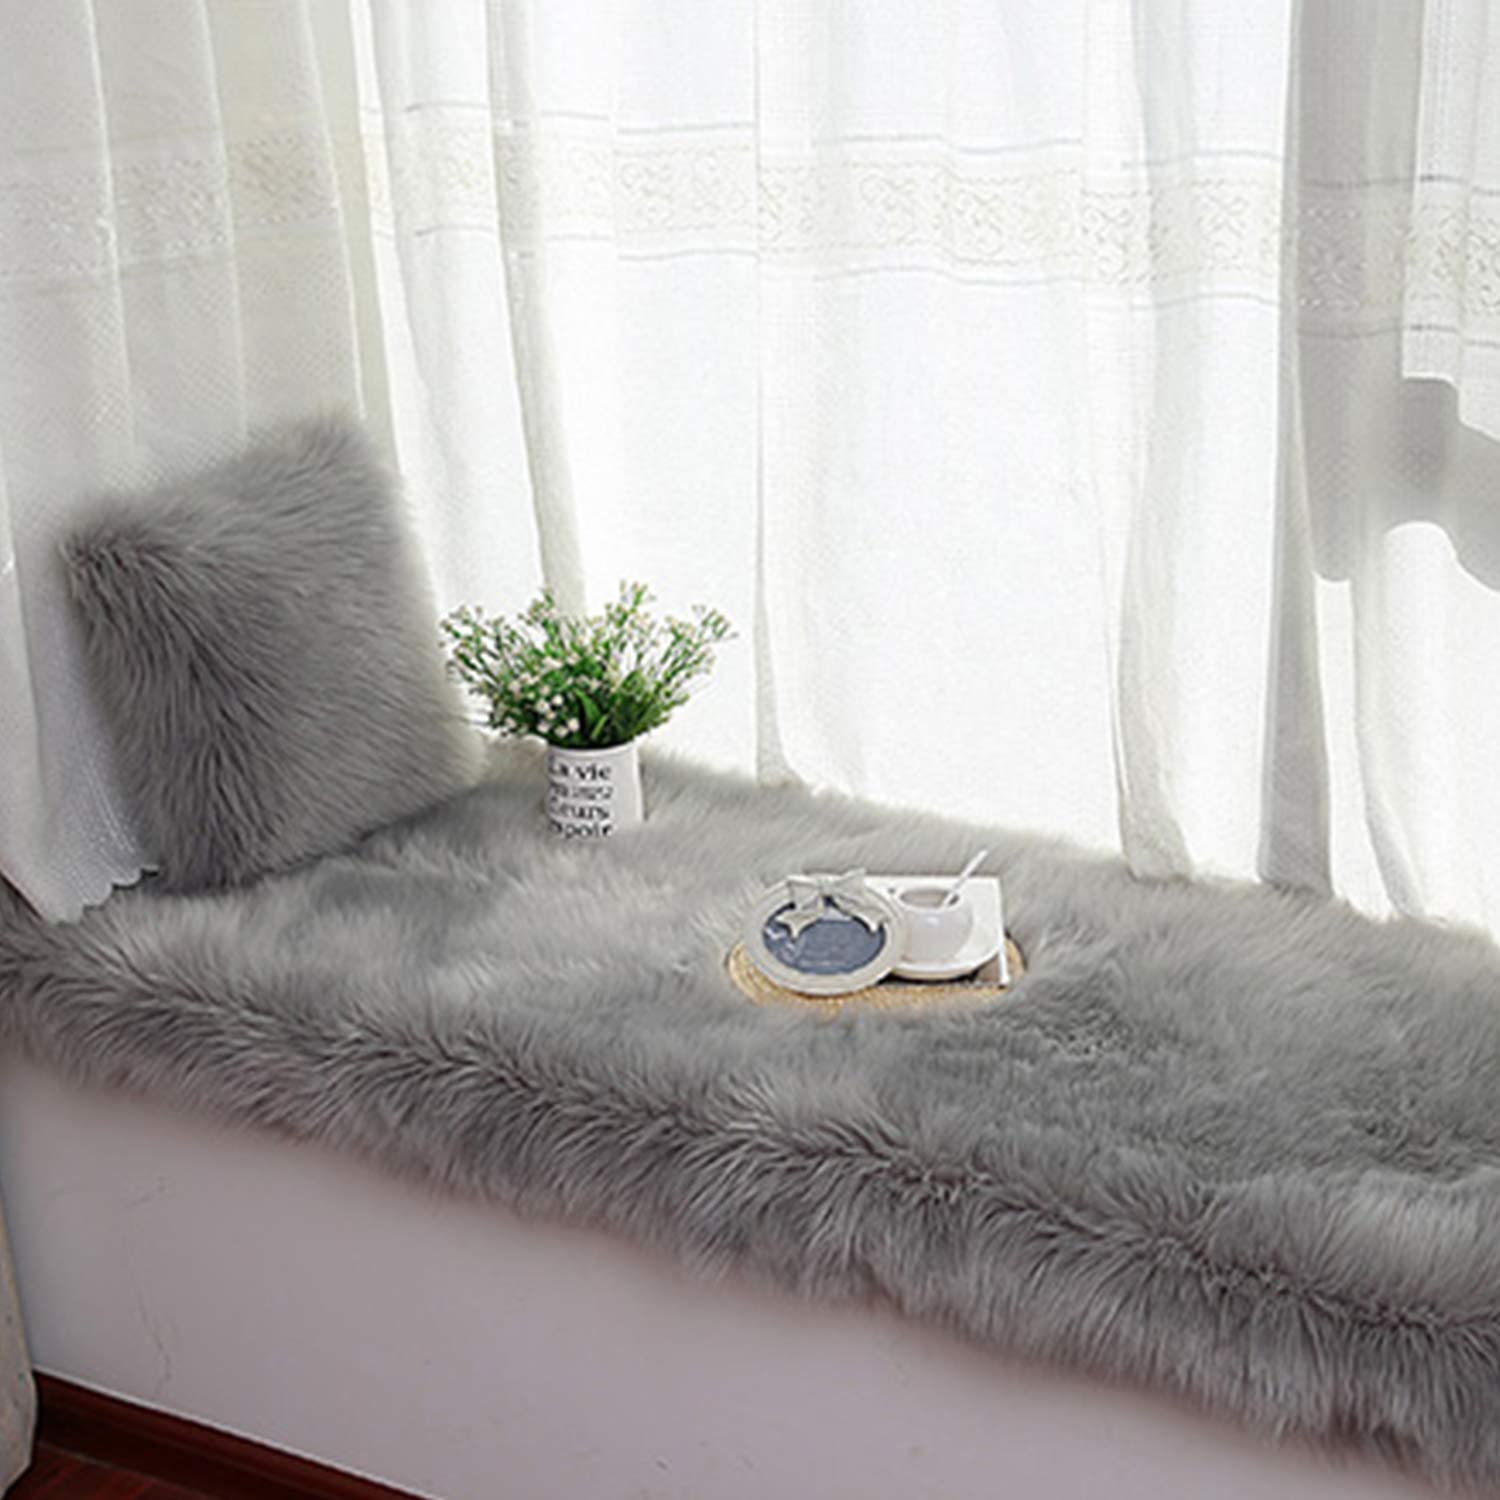 Gray Bench 43 X 43 cm Unee1 Decorative Throw Pillow Covers 17 x 17 Cushion Cover Soft Plush Pillowcase for Couch,Sofa,Bed